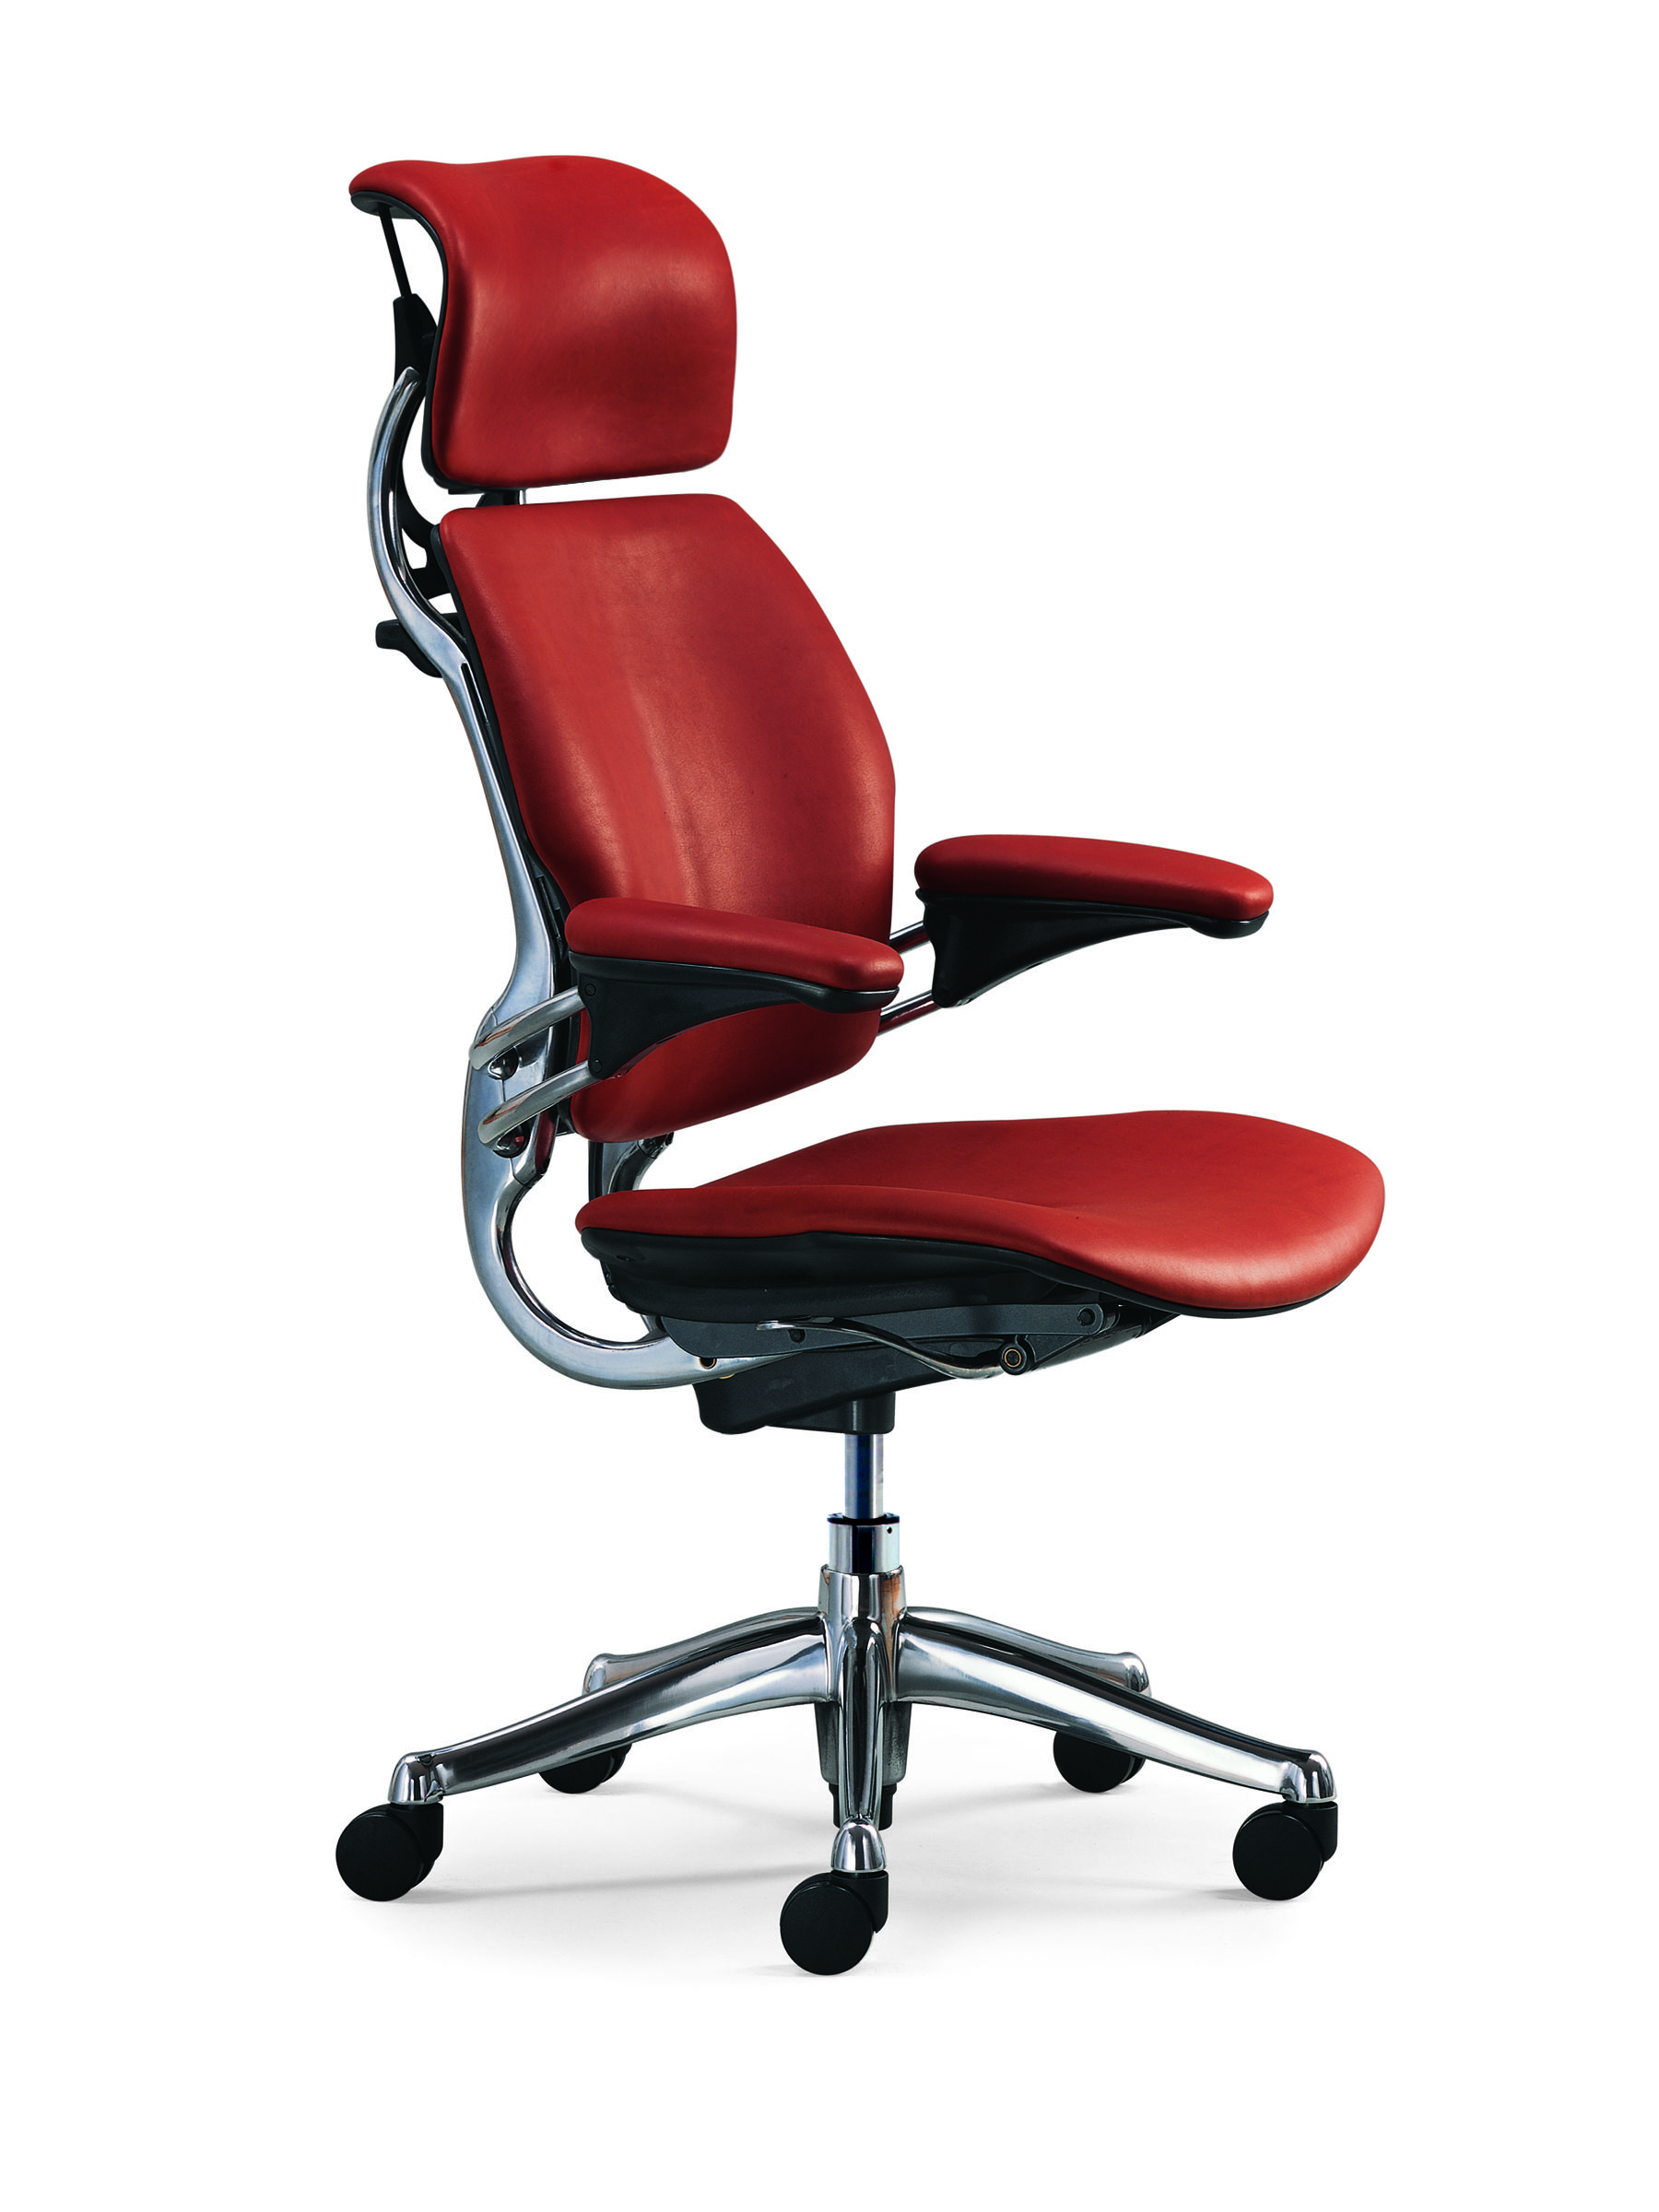 Freedom Headrest Humanscale Niels Diffrient Red Bright Product Photograph Best Office Chair Most Comfortable Office Chair Best Ergonomic Office Chair